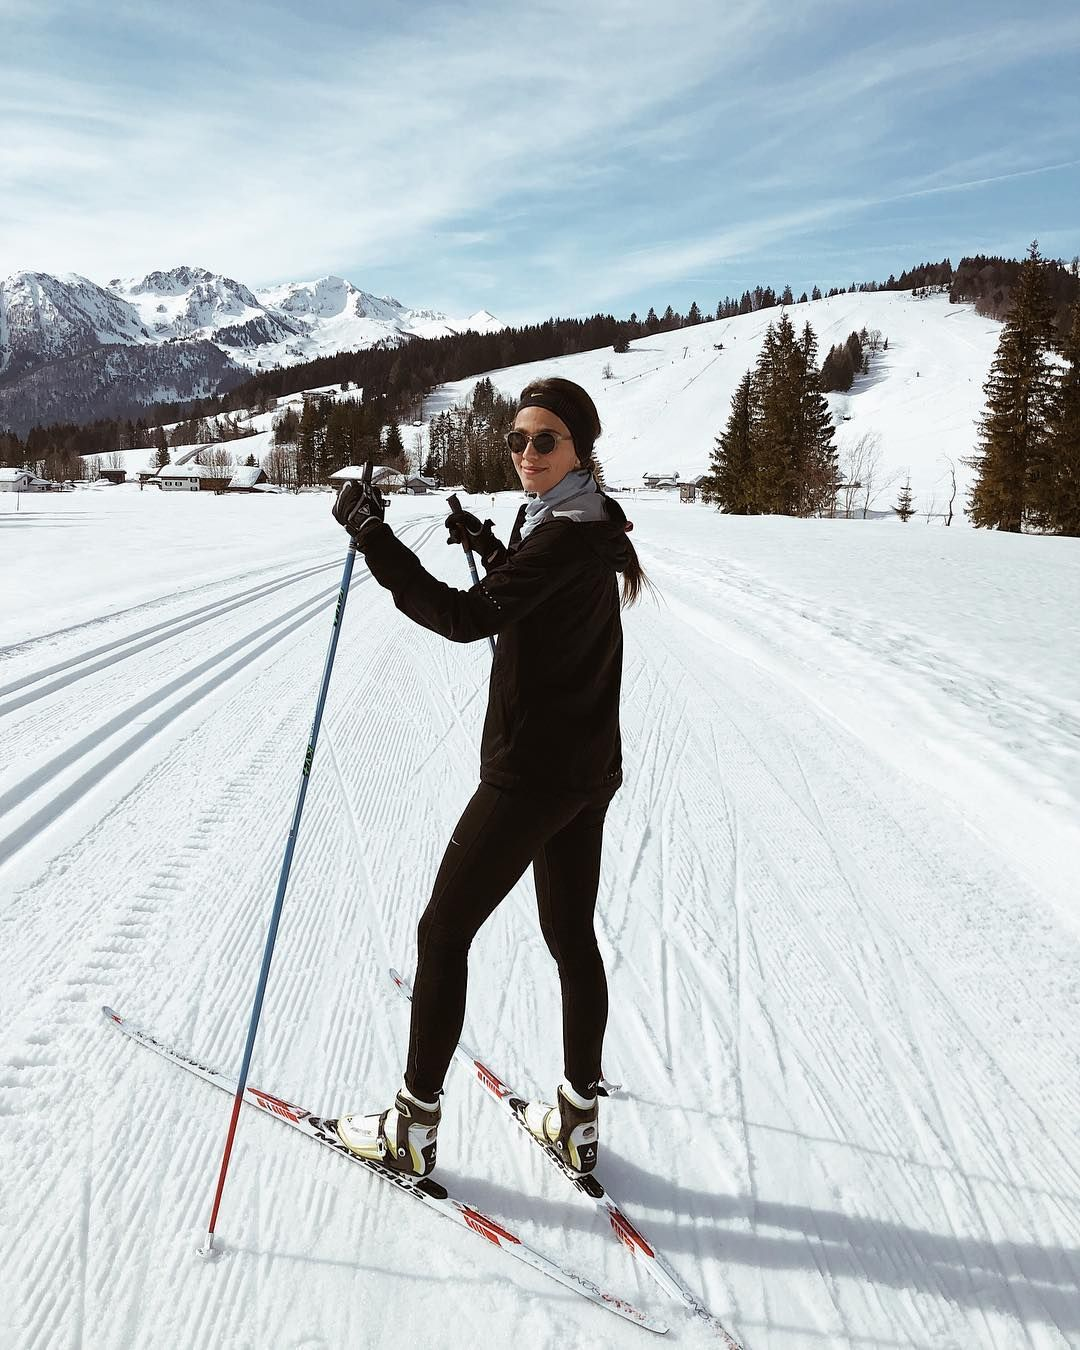 Pin By Tiffany Cooper On Everything Winter In 2020 Cross Country Skiing Skiing Colorado Skiing